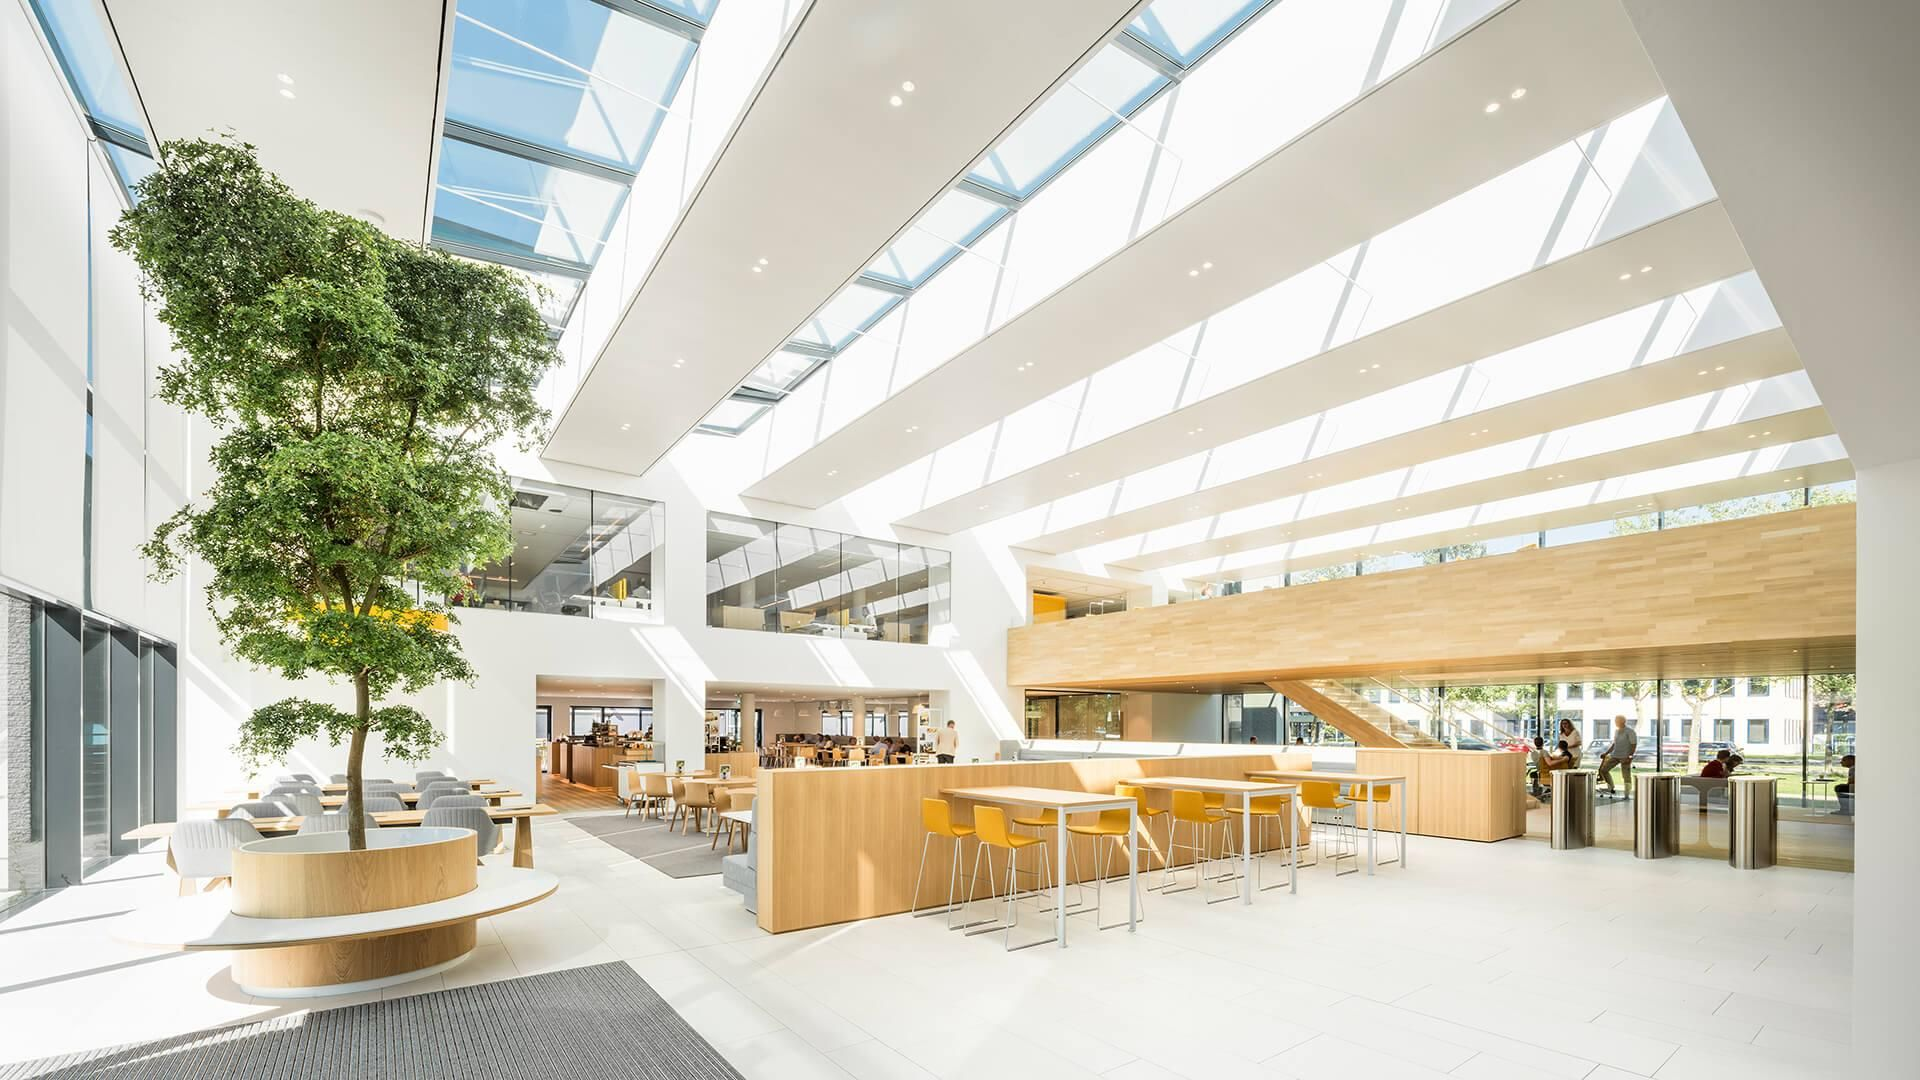 Menzis Health Insurance Company Office Building By Cie In Groningen Netherlands Office Building Modern Buildings Building